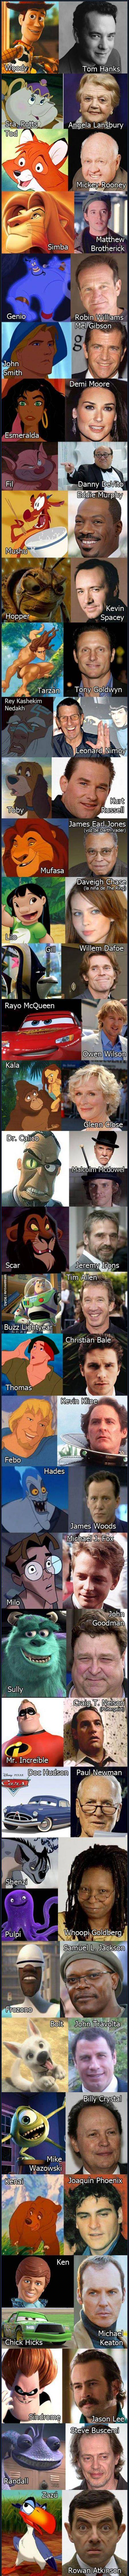 Disney-Characters-And-Their-Voice-Over-Actors,Disney Characters And Their Voice Over Actors,Disney Characters ,Disney ,Characters ,Disney cartoons,cartoon,toon voices ,Characters And Their Voice Over Actors,Characters And Their Voice,Actors,And Their Voice Over Actors,